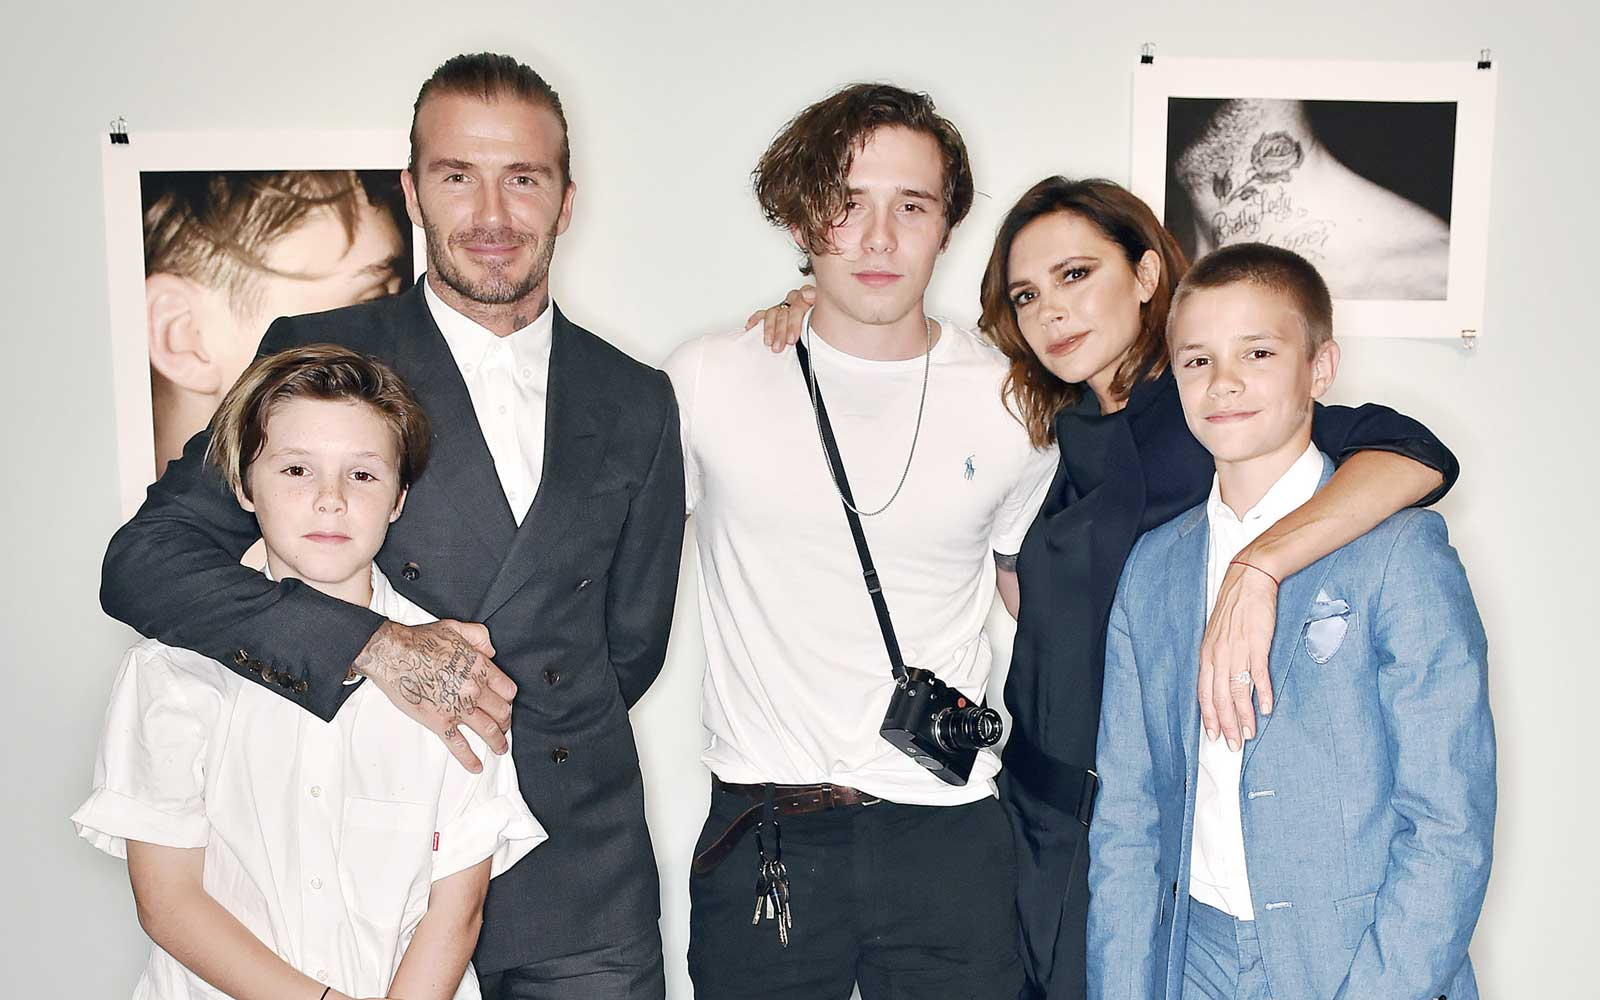 David and Victoria Beckham Spent Their Spring Break on a Yacht With Marc Anthony